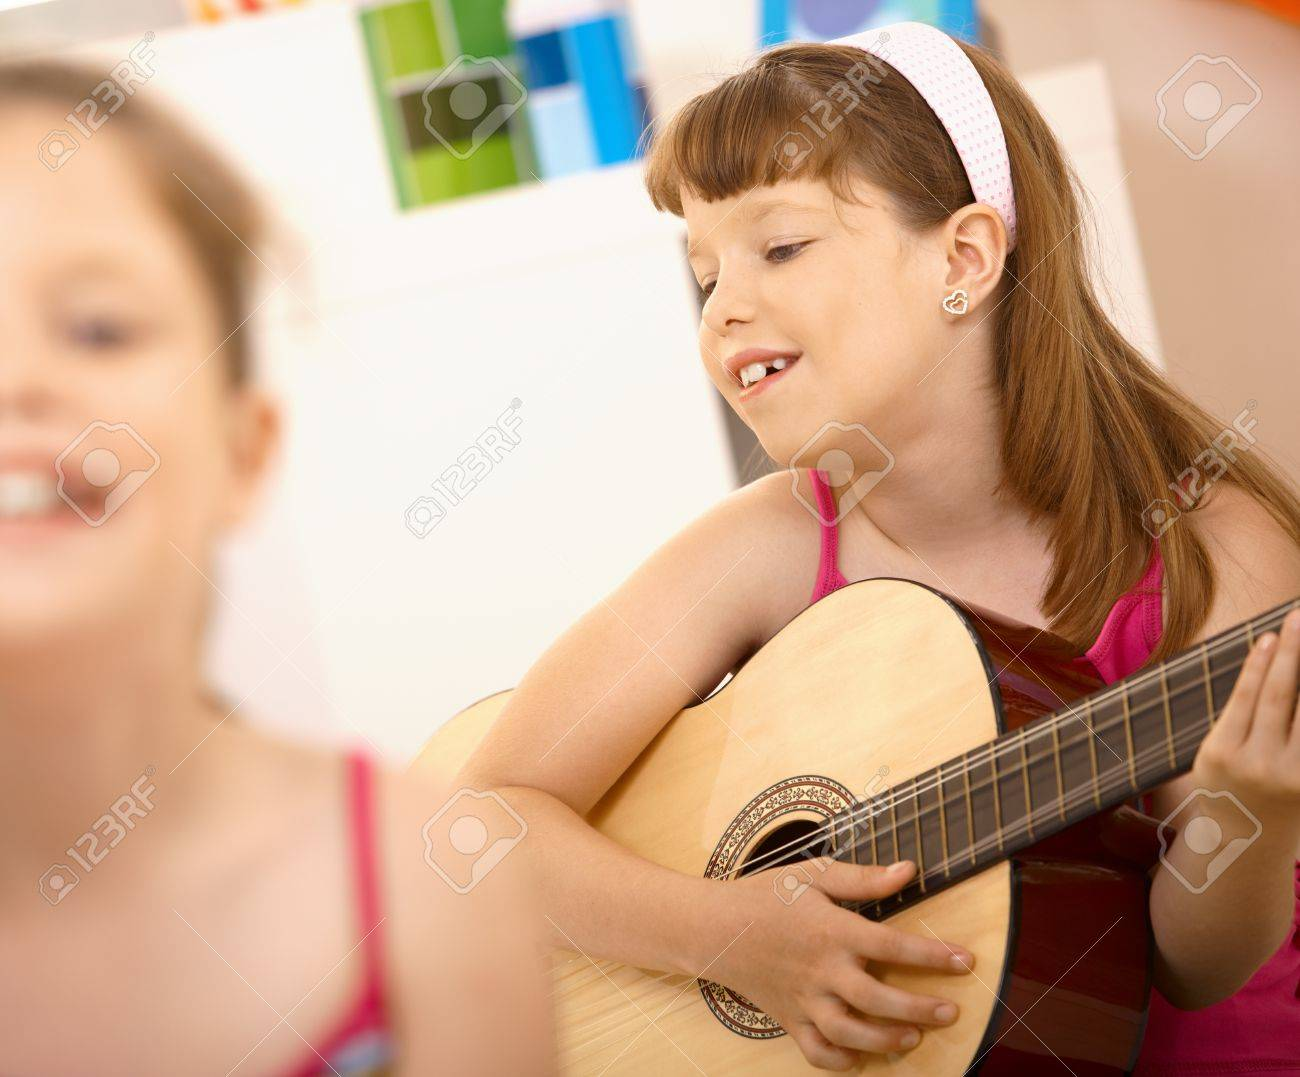 Young girl enjoying playing guitar, smiling at home. Stock Photo - 8783916